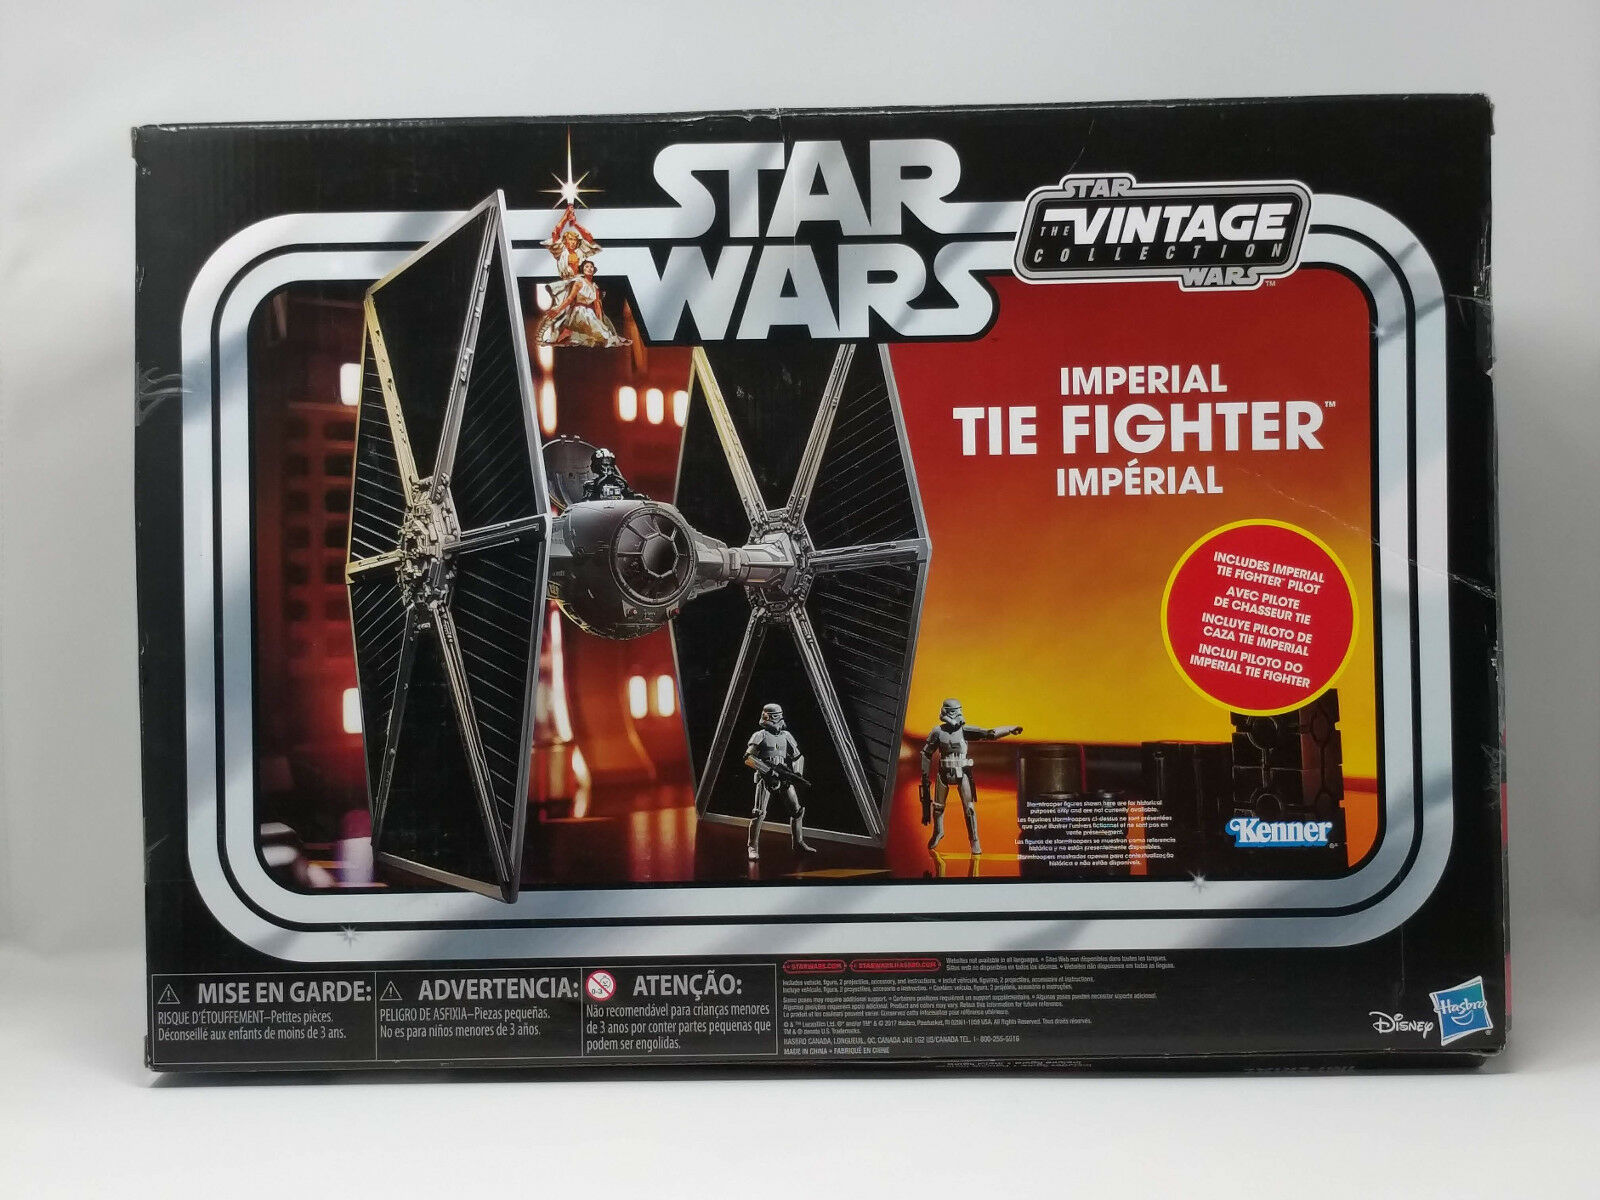 Star Imperial Wars Vintage Collection Imperial Star Tie Fighter and Pilot Exclusive Retro 1f9dc3